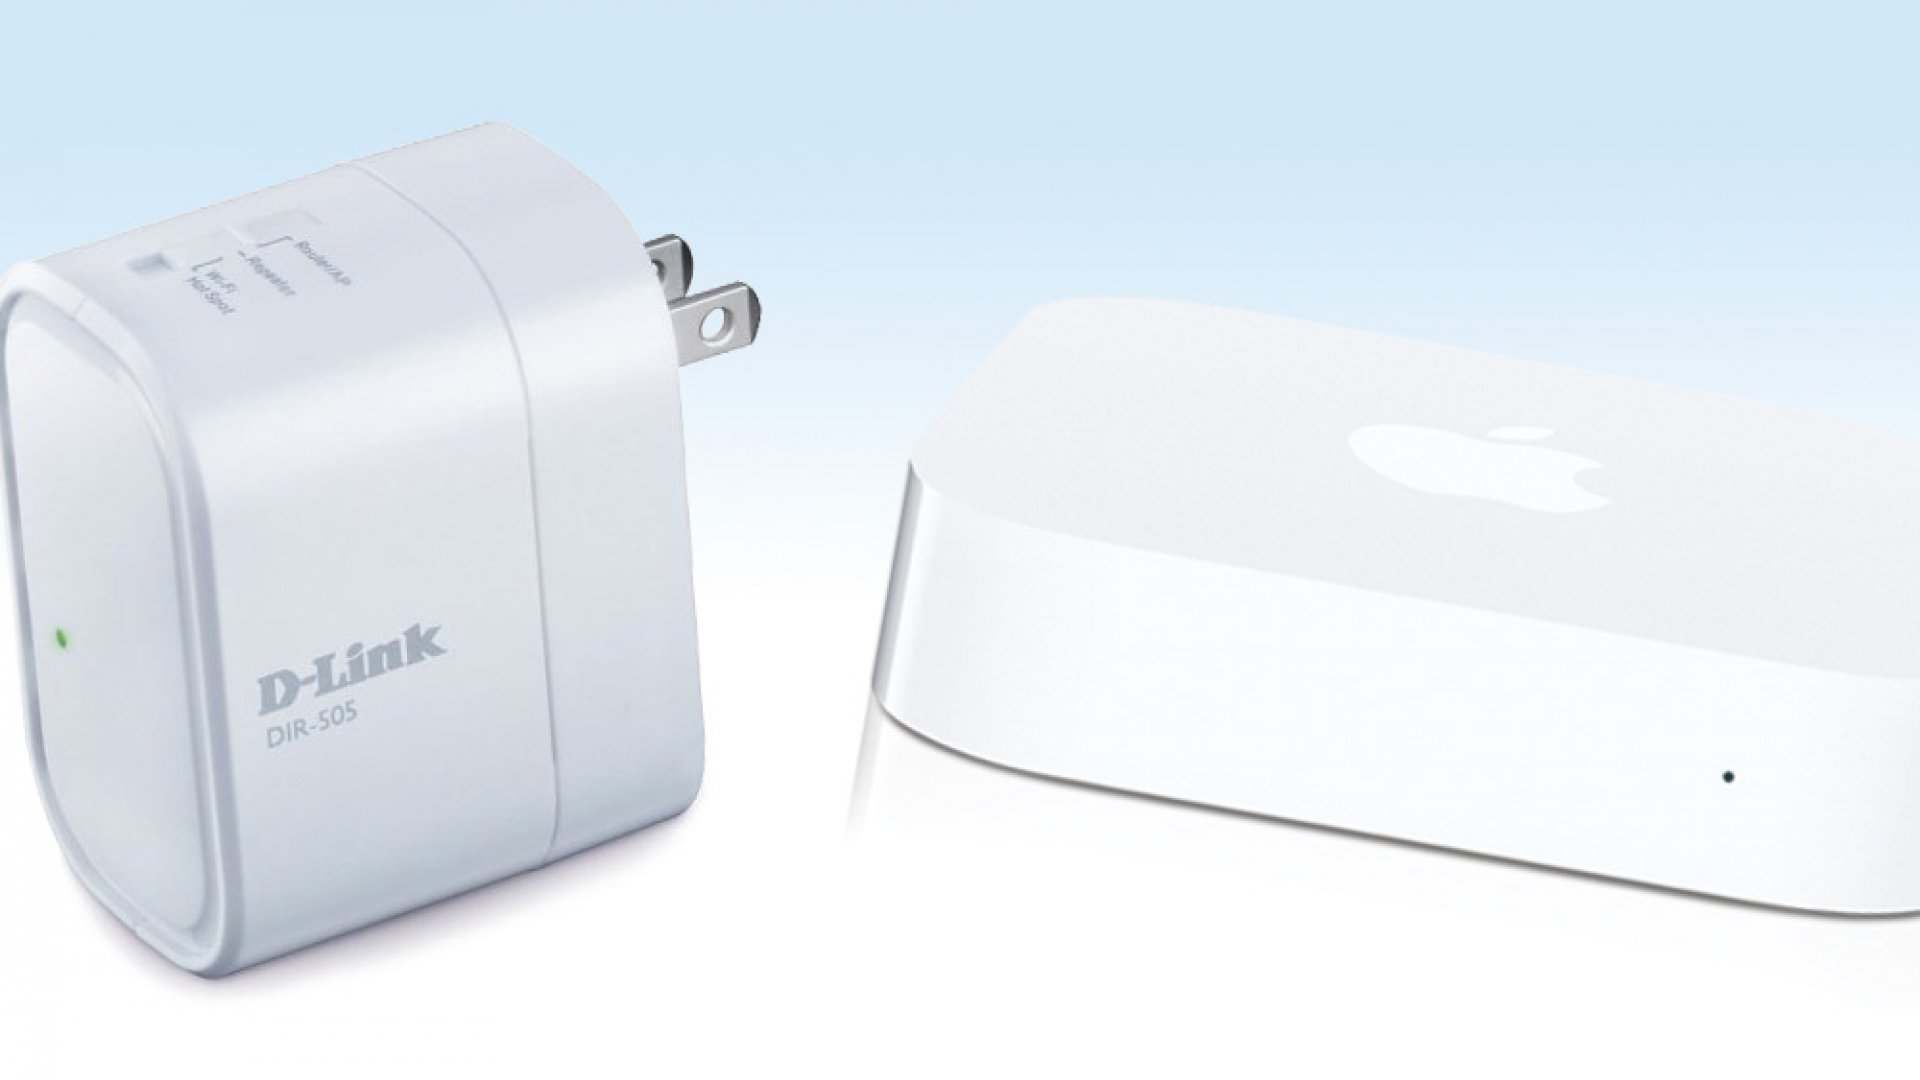 From left to right: D-Link Shareport Mobile Companion DIR-505, Apple Airport Express.